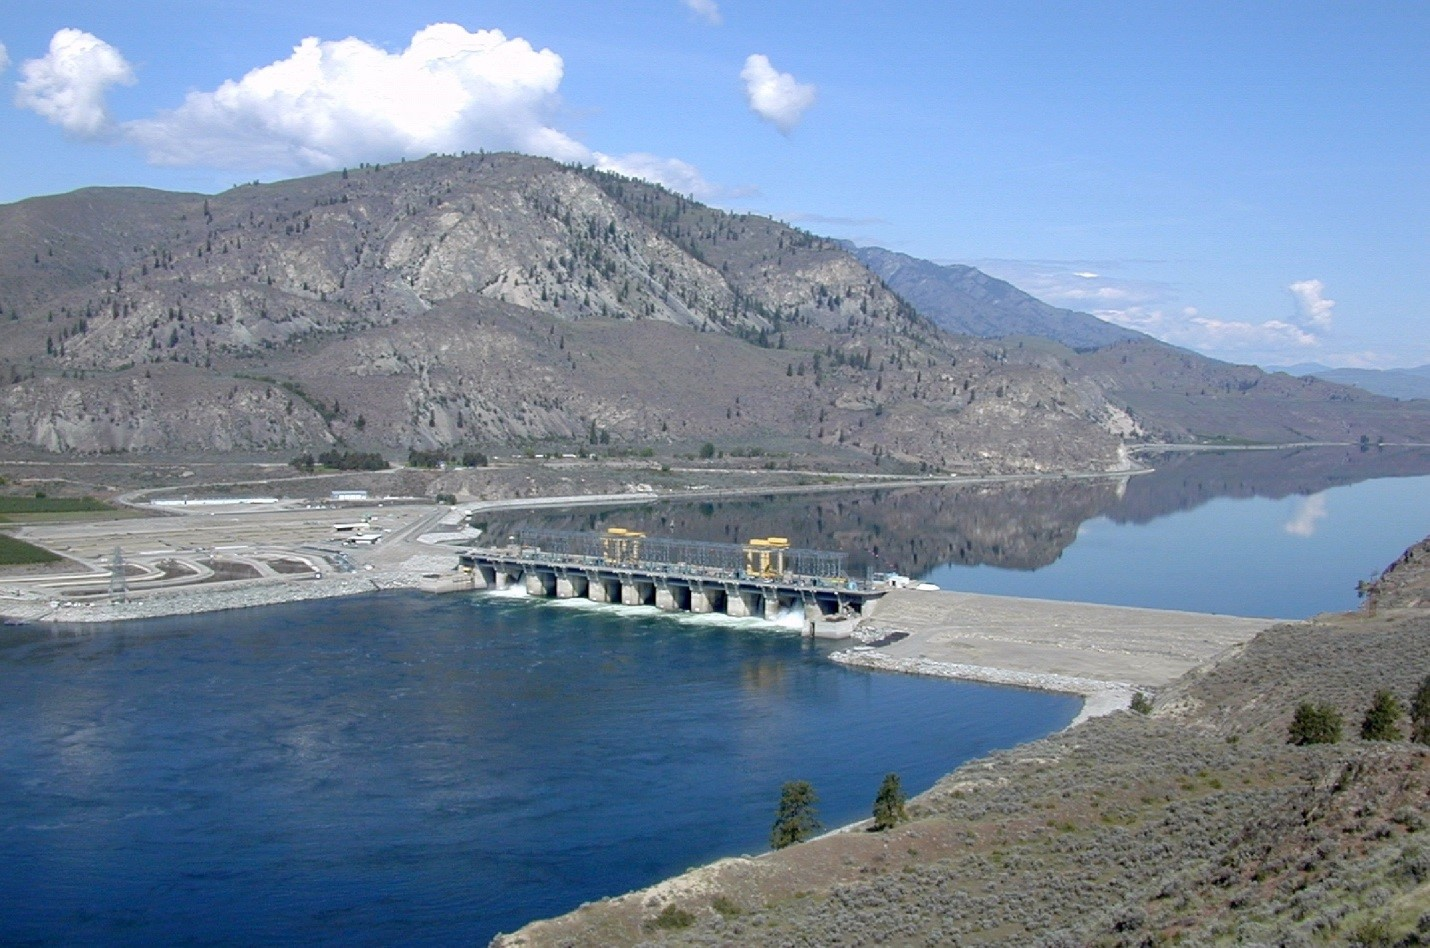 The Wells Dam on the Columbia River is one of the dams sockeye salmon must pass to reach the Okanagan River system upstream. Credit: Douglas PUD